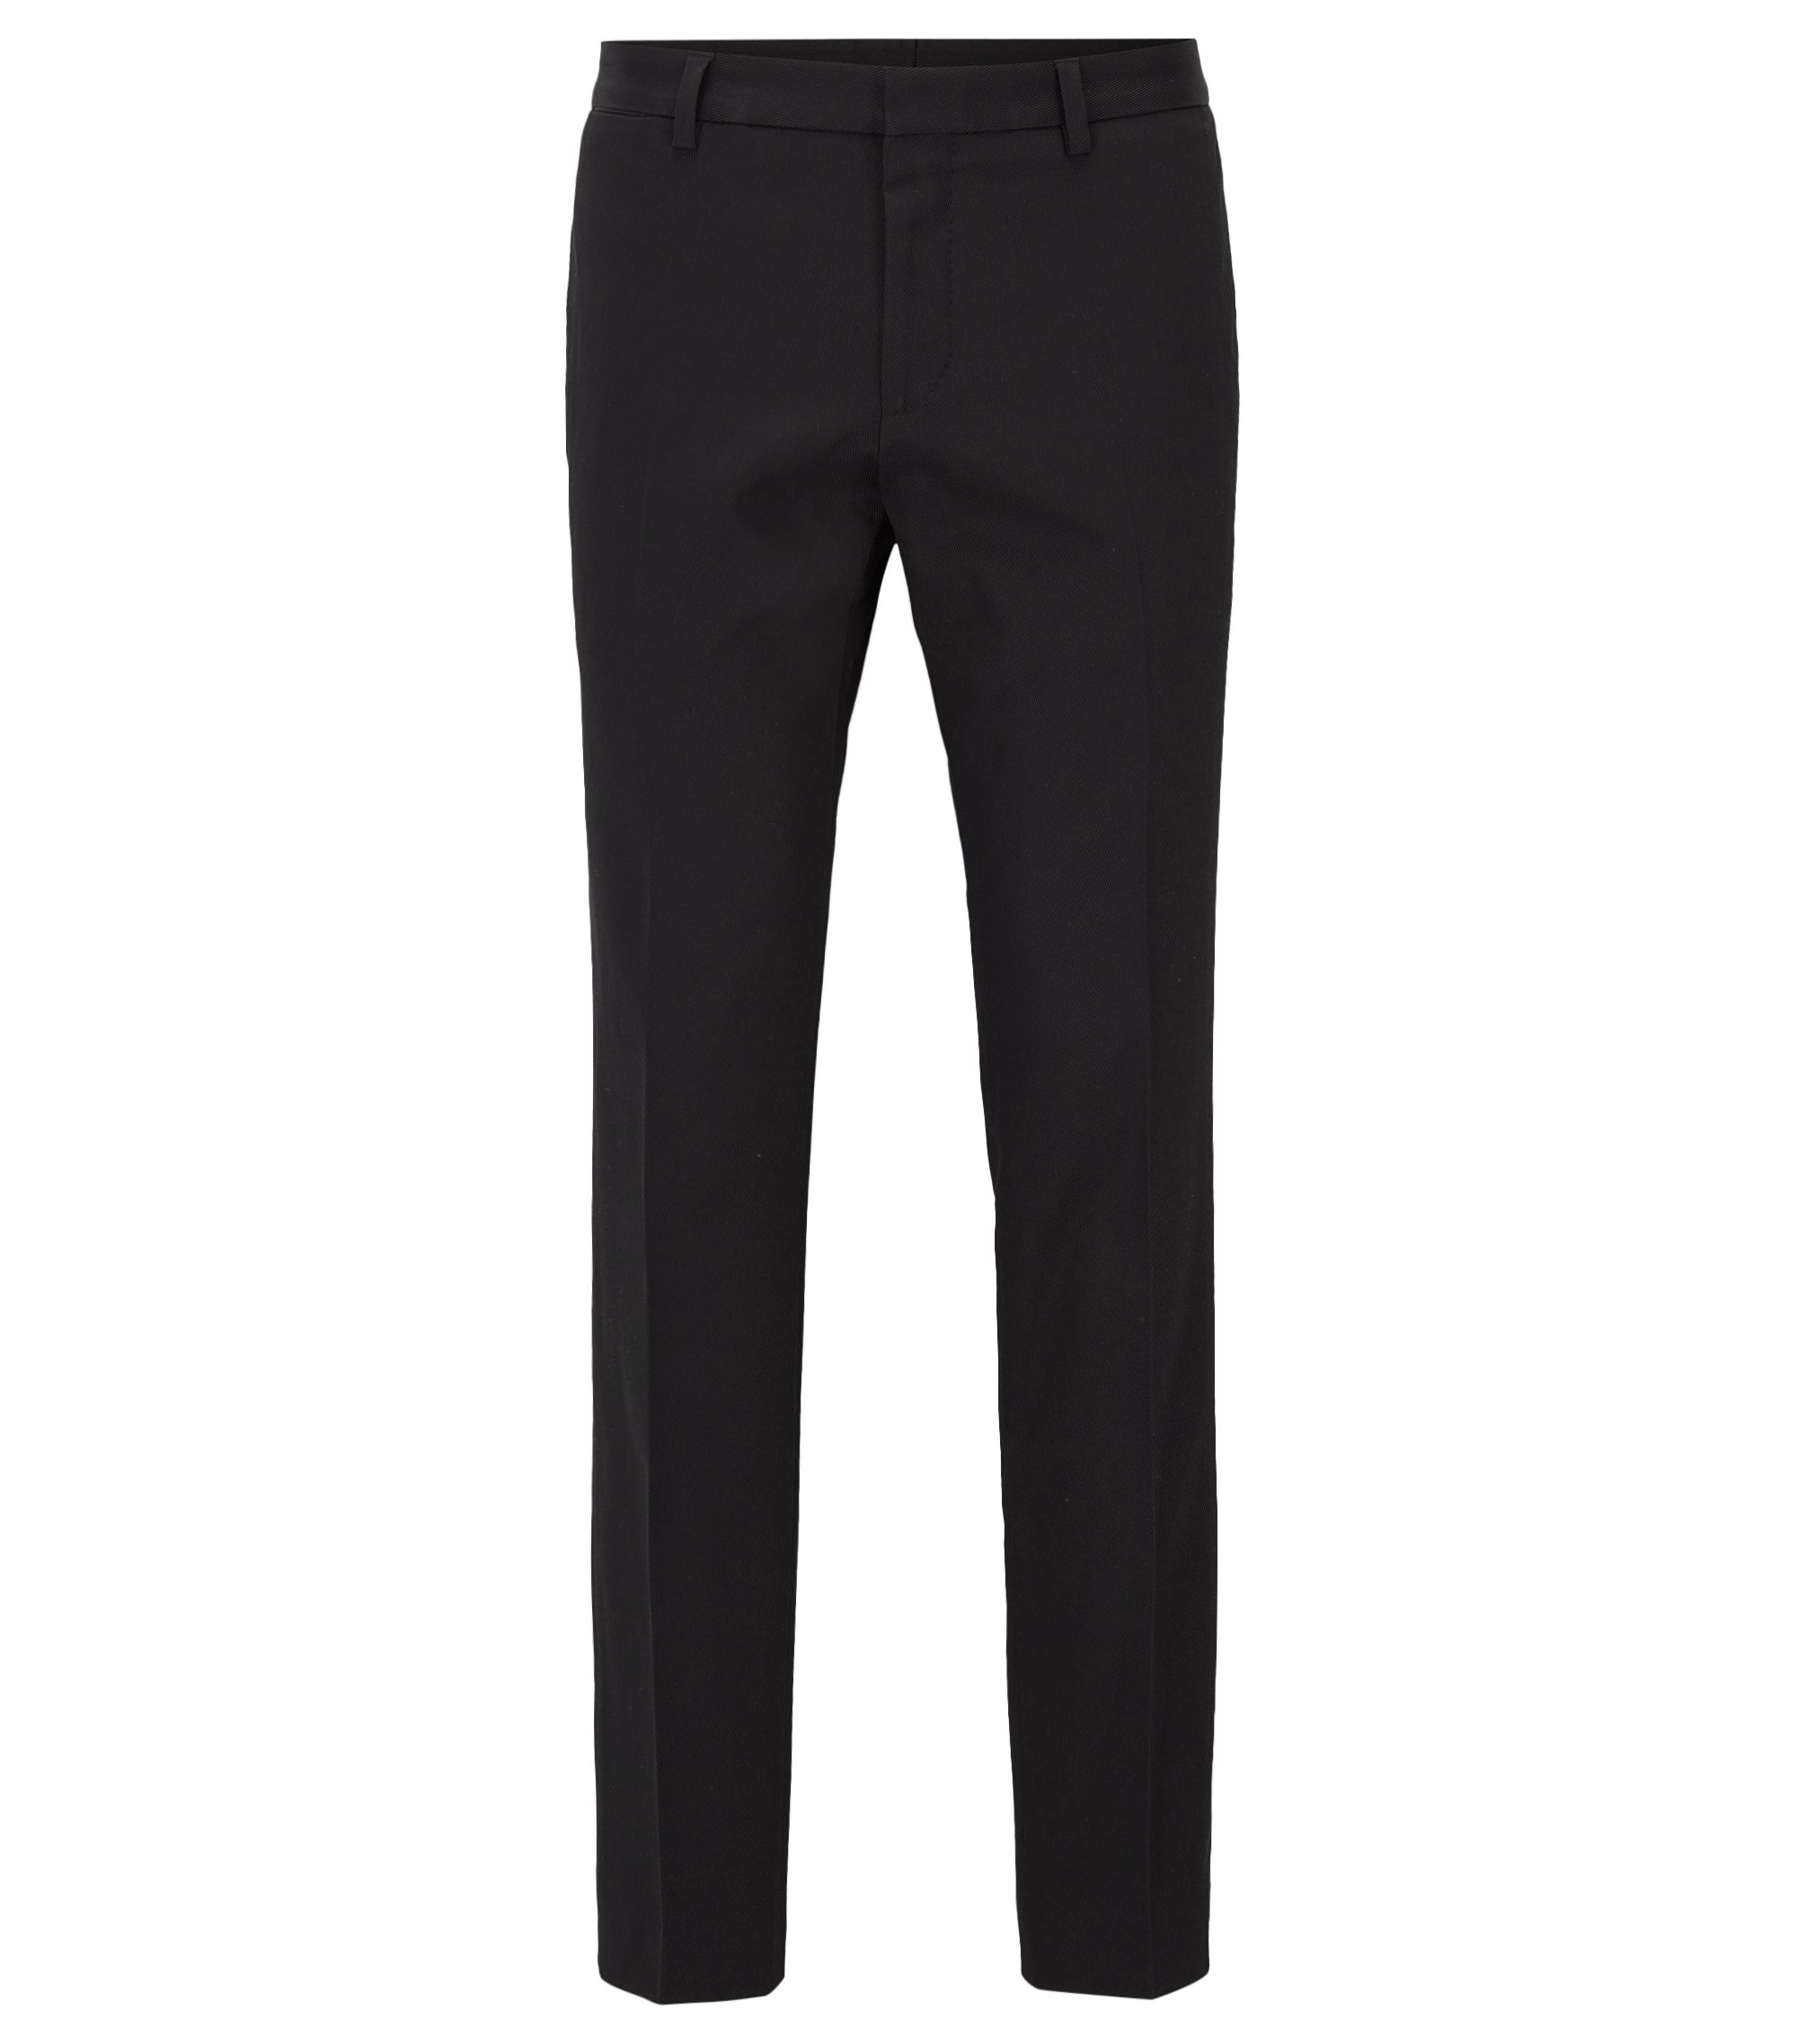 Stretch Cotton Dress Pant, Extra-Slim Fit | Winn, Black